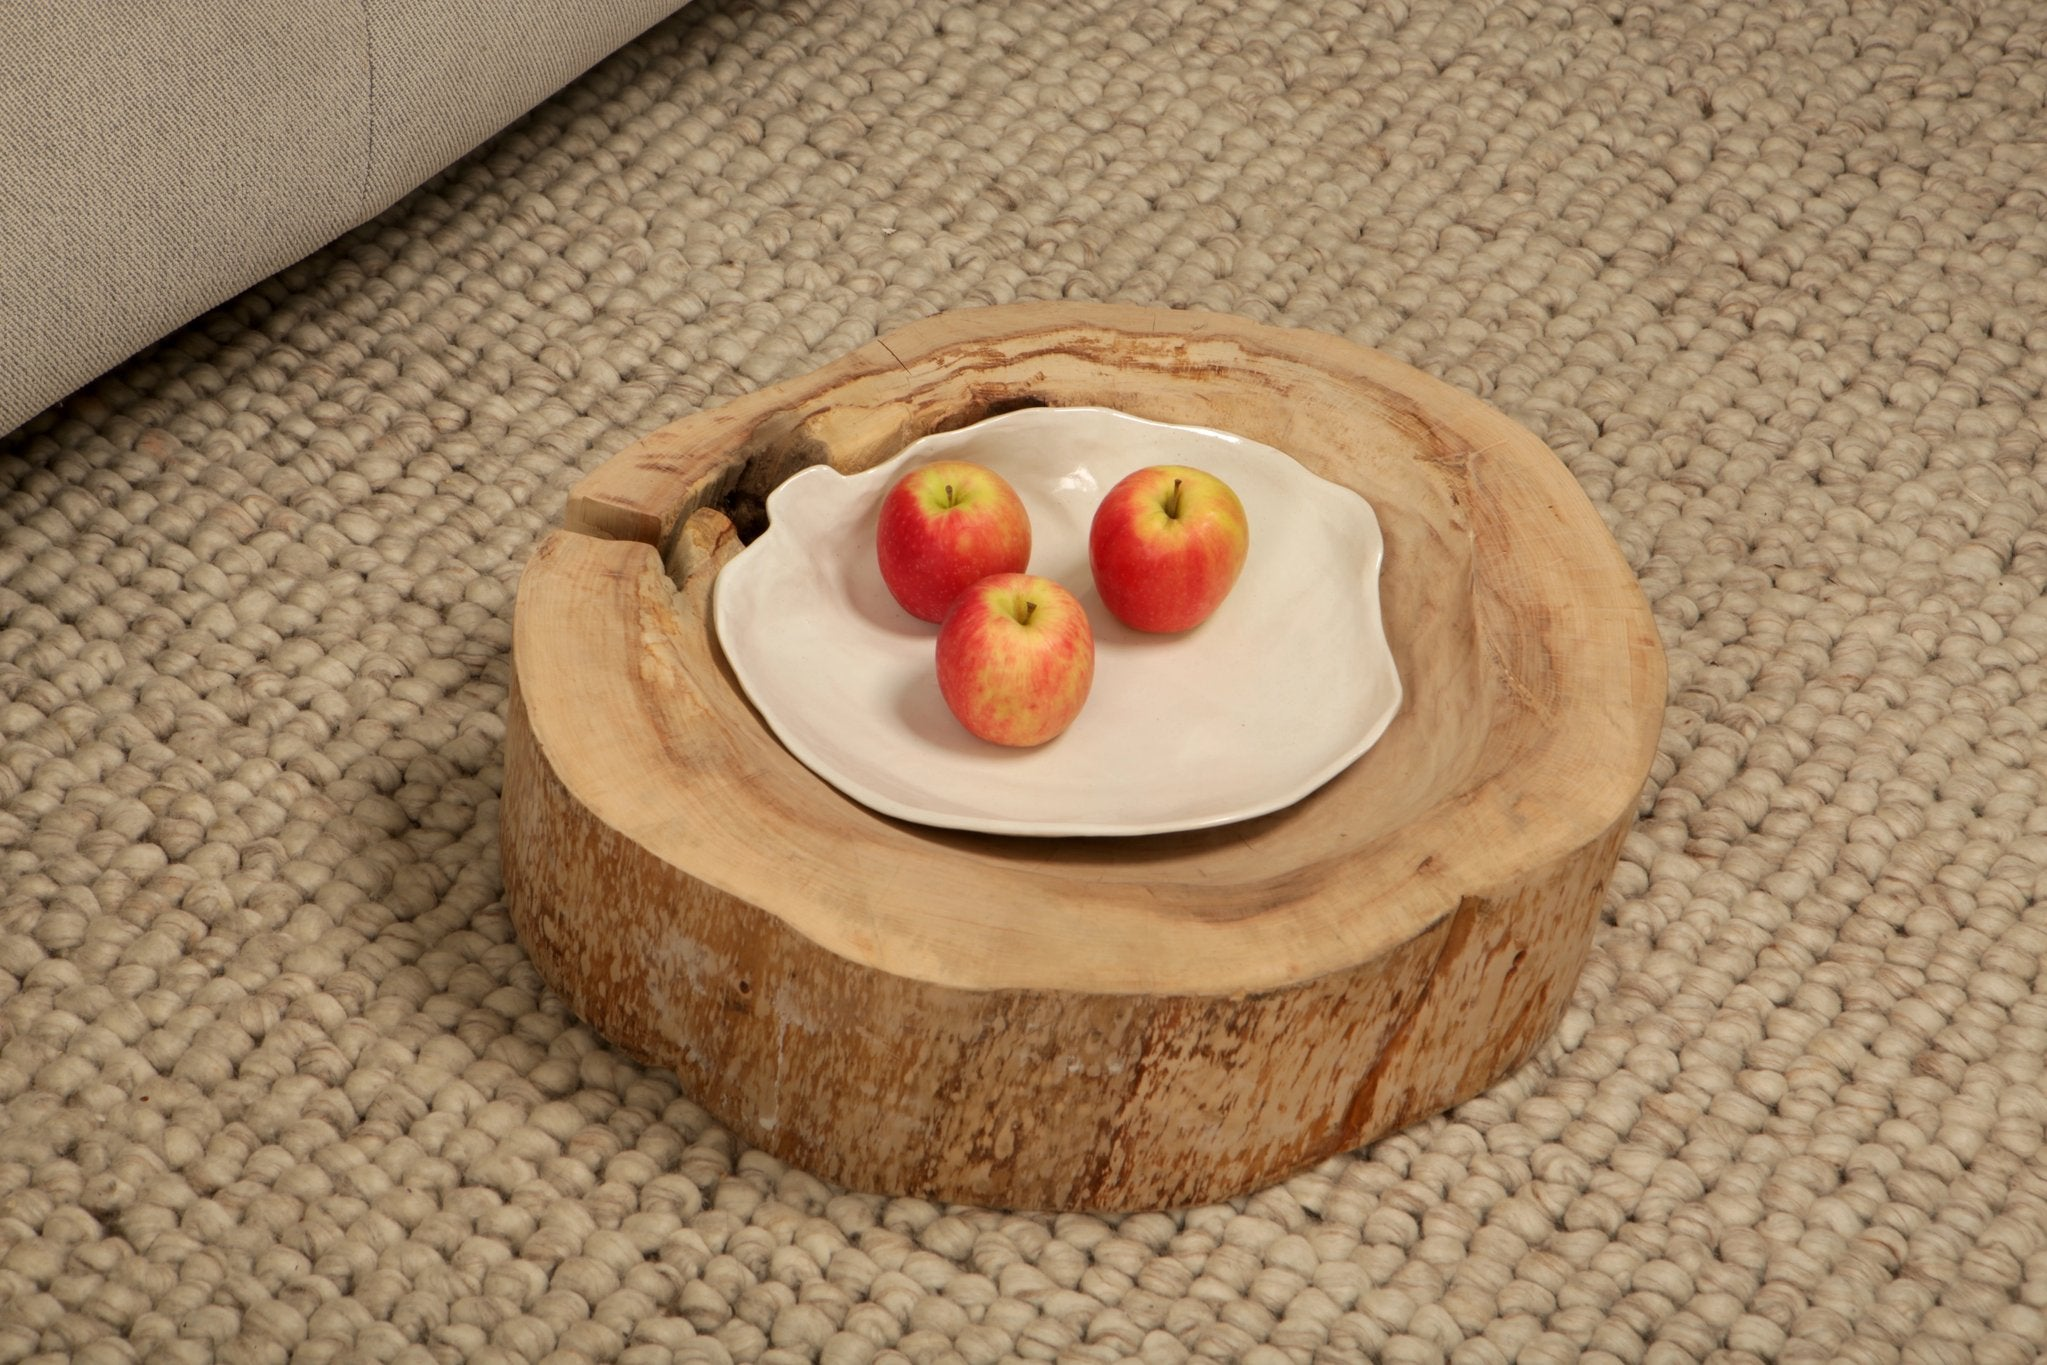 Large Shell bowl combination - Bowl/side table from reclaimed wood and ceramics